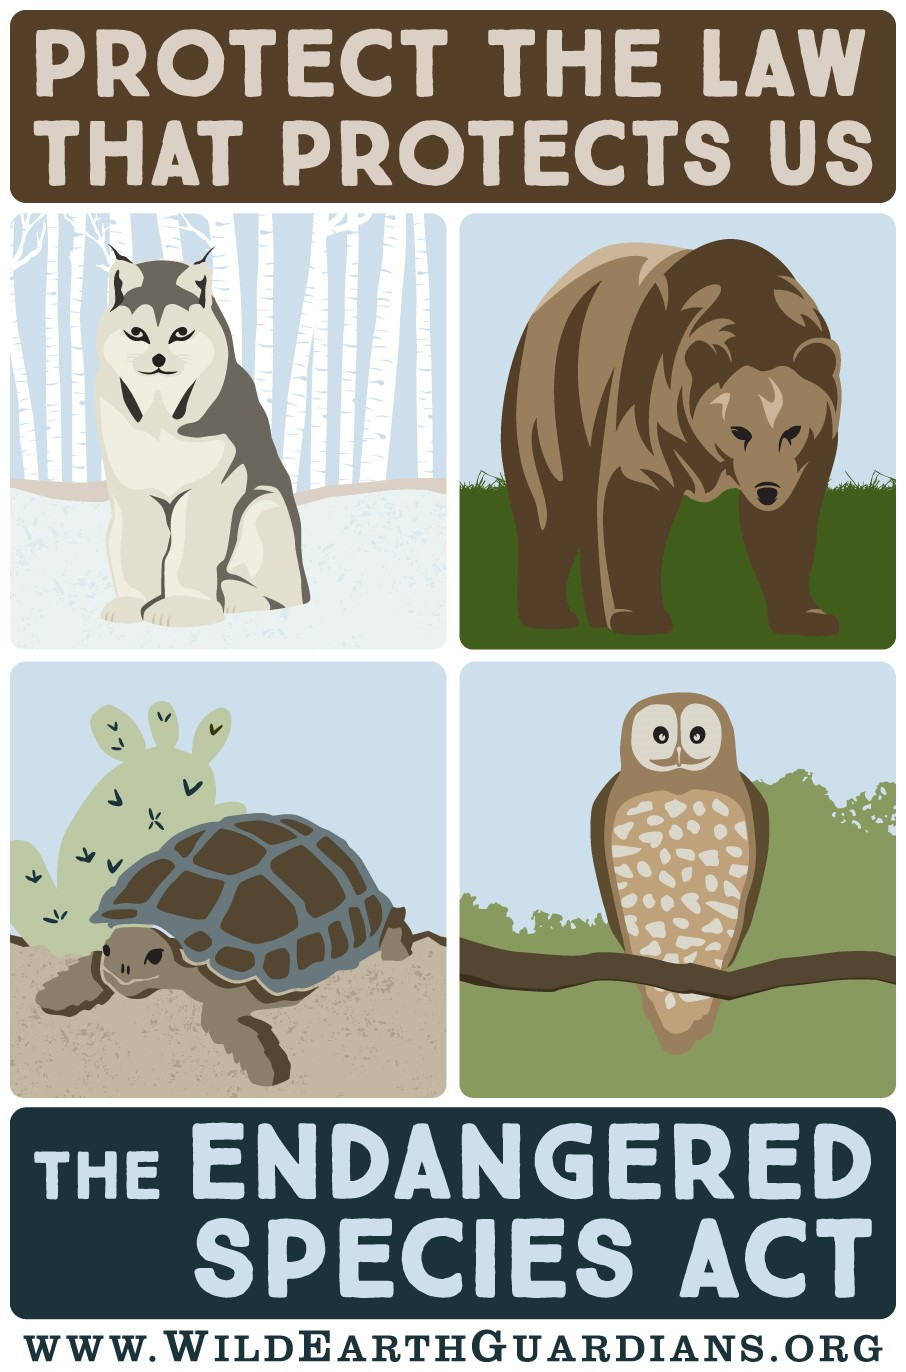 Endangered Species Campaign mark